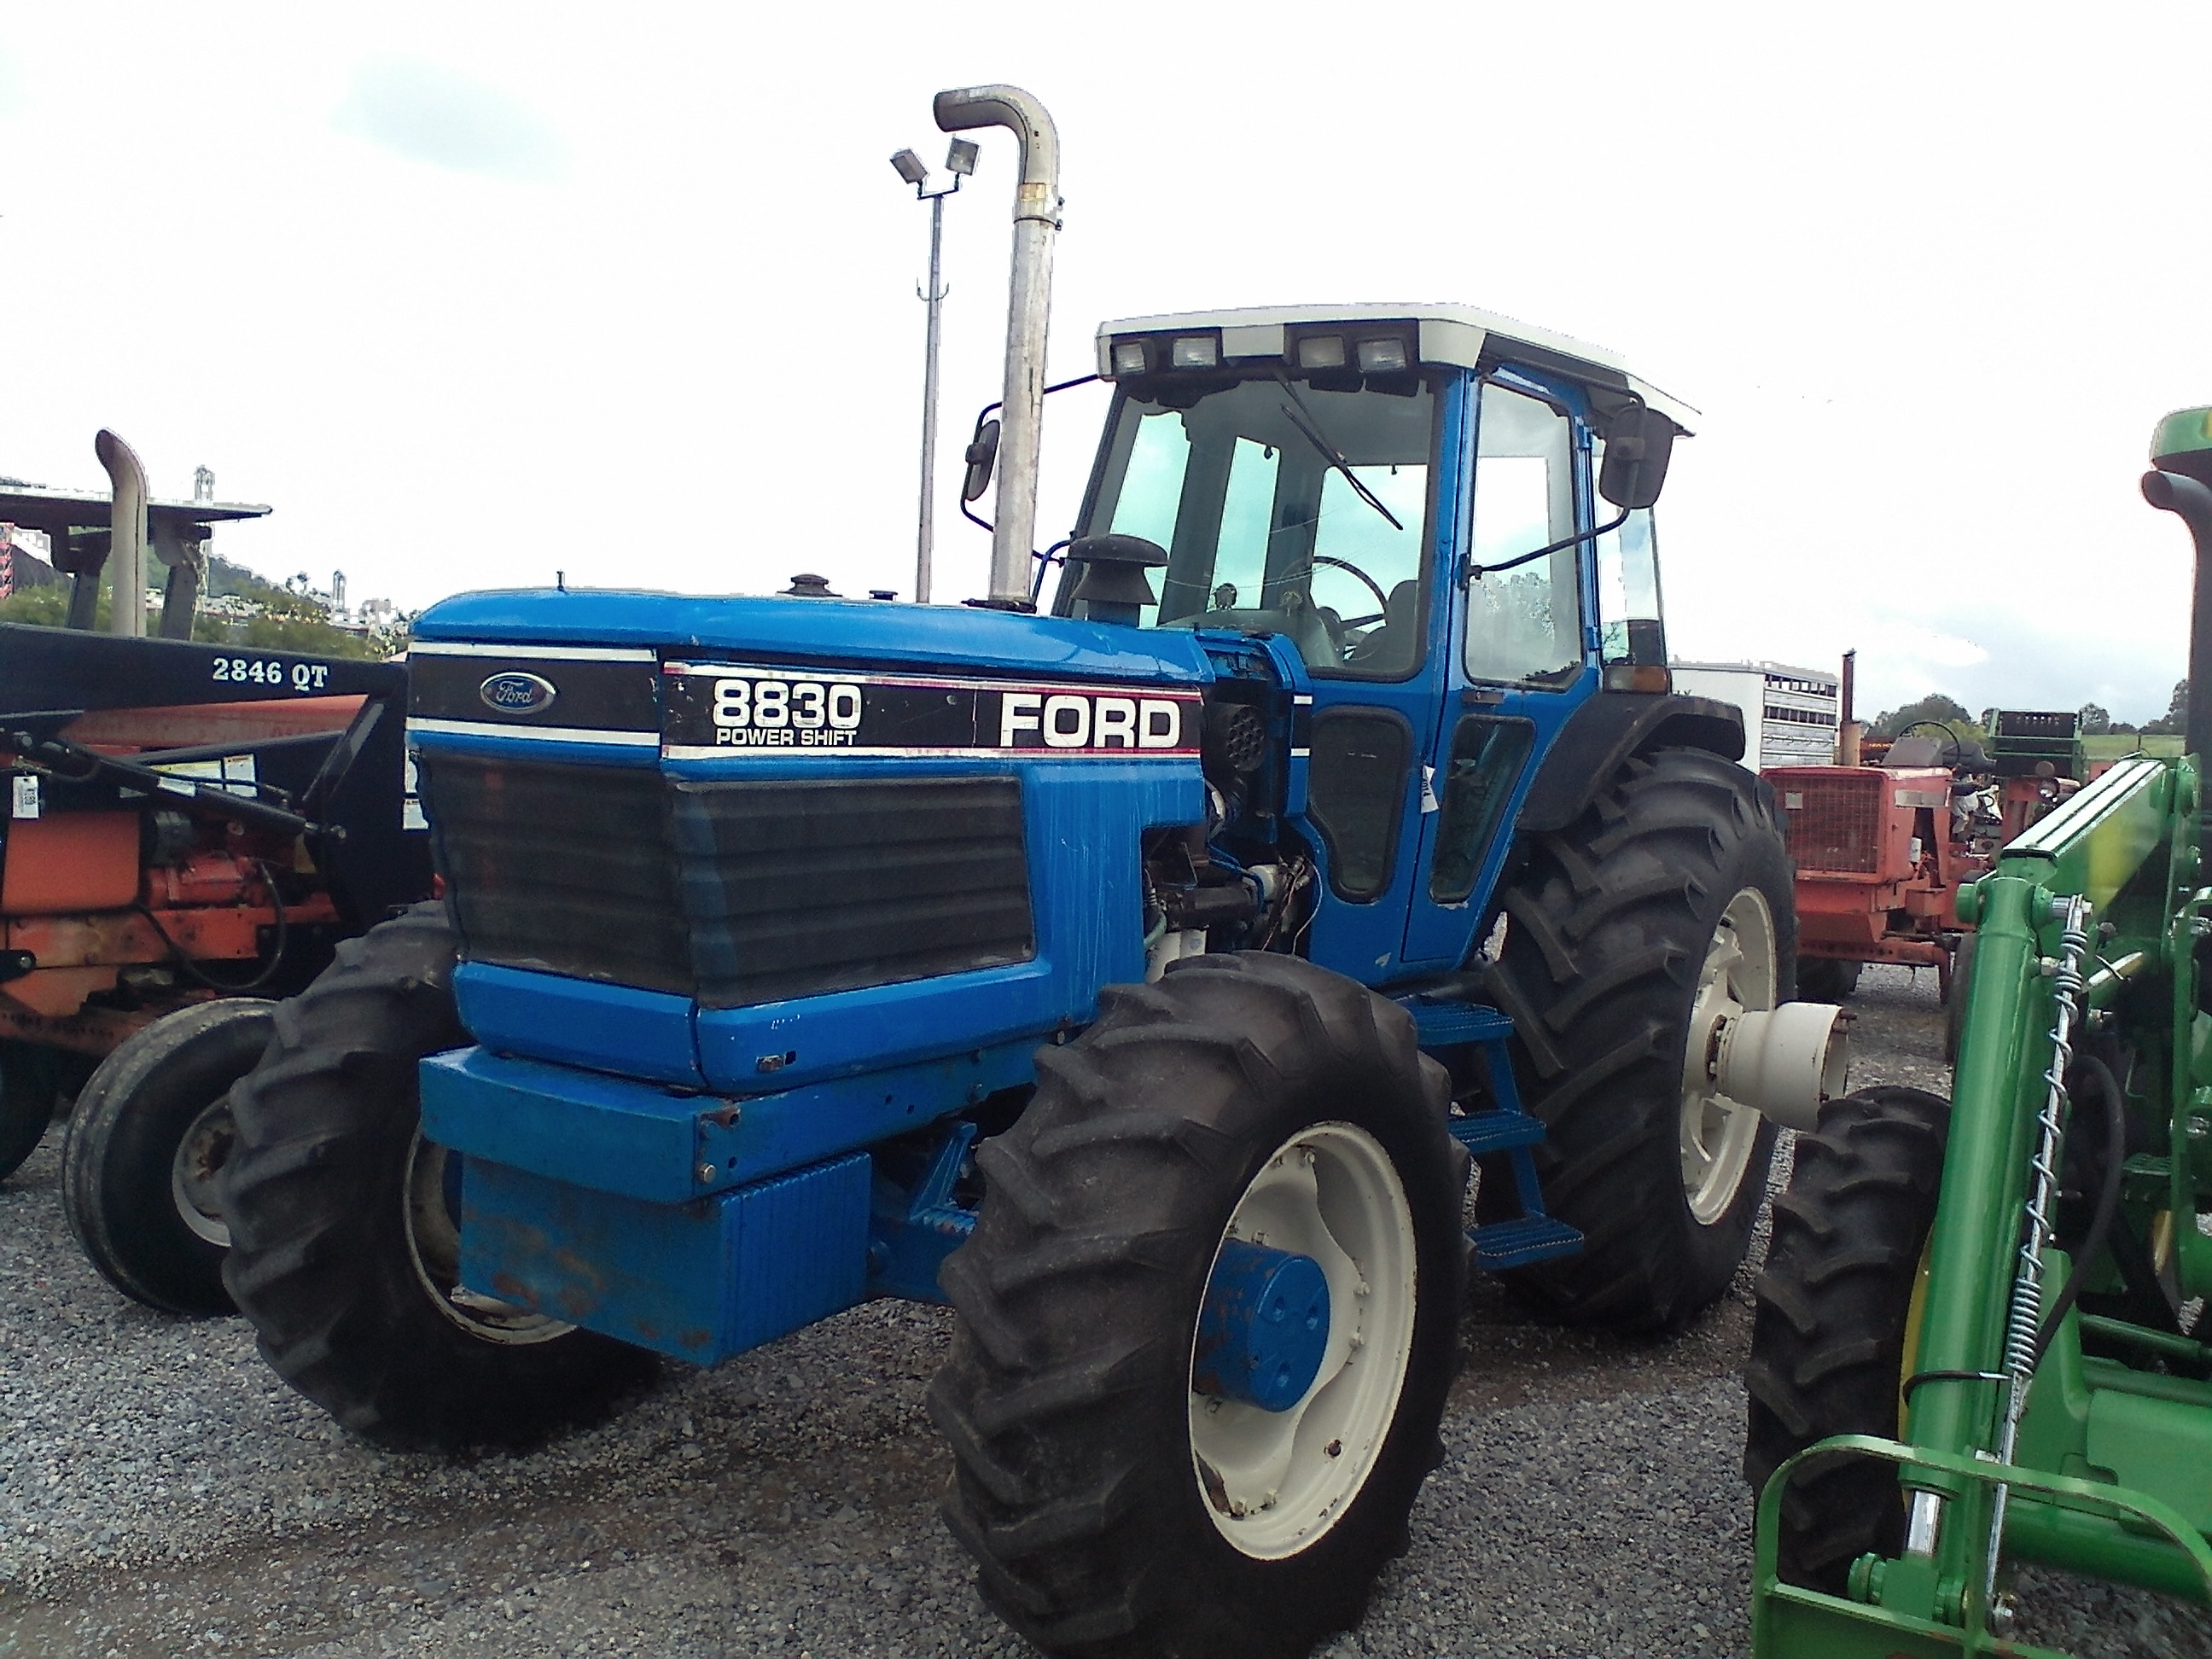 FORD 8830 4X4 W/ CAB Image